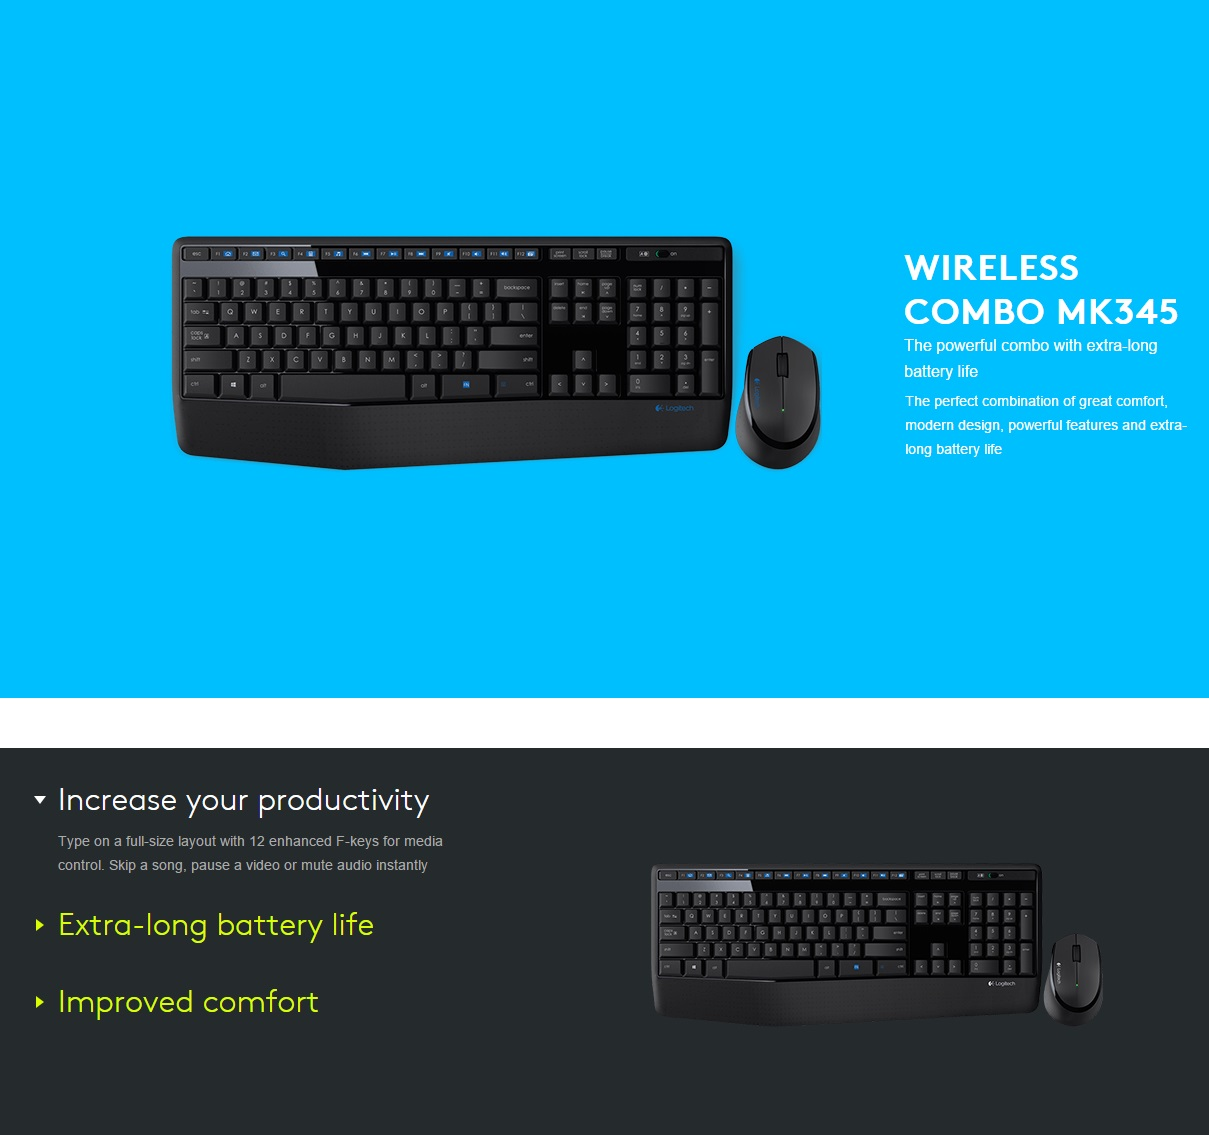 A large marketing image providing additional information about the product Logitech MK345 Cordless Desktop - Additional alt info not provided